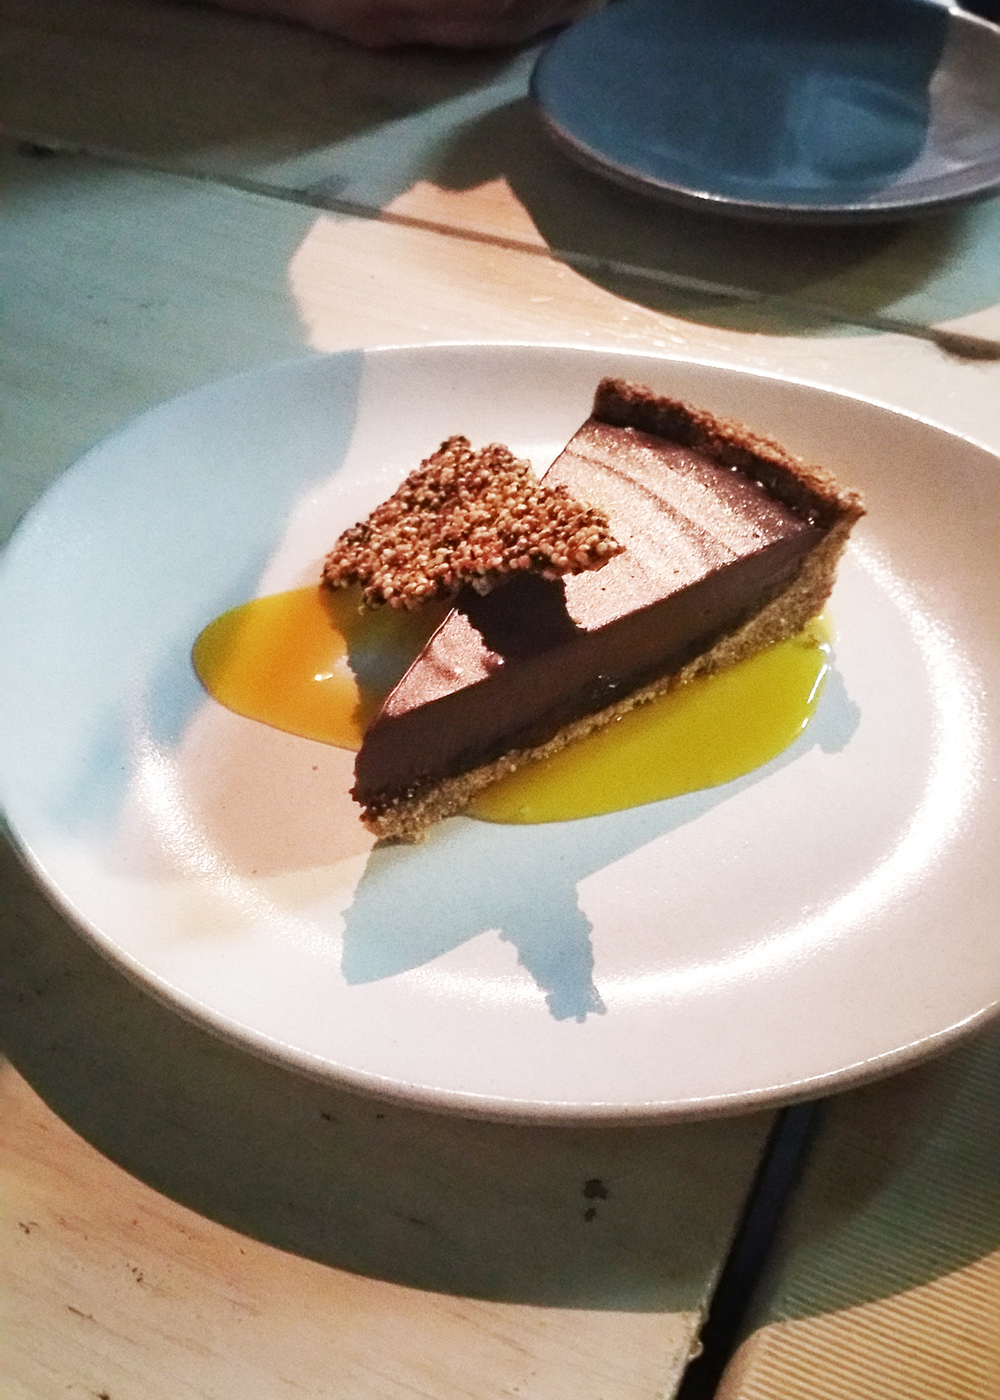 Tarta de Chocolate : rich dark chocolate tart with a layer of chipotle & ancho chilli caramel & a hazelnut crust. Served with passionfruit gel & crunchy quinoa brittle.